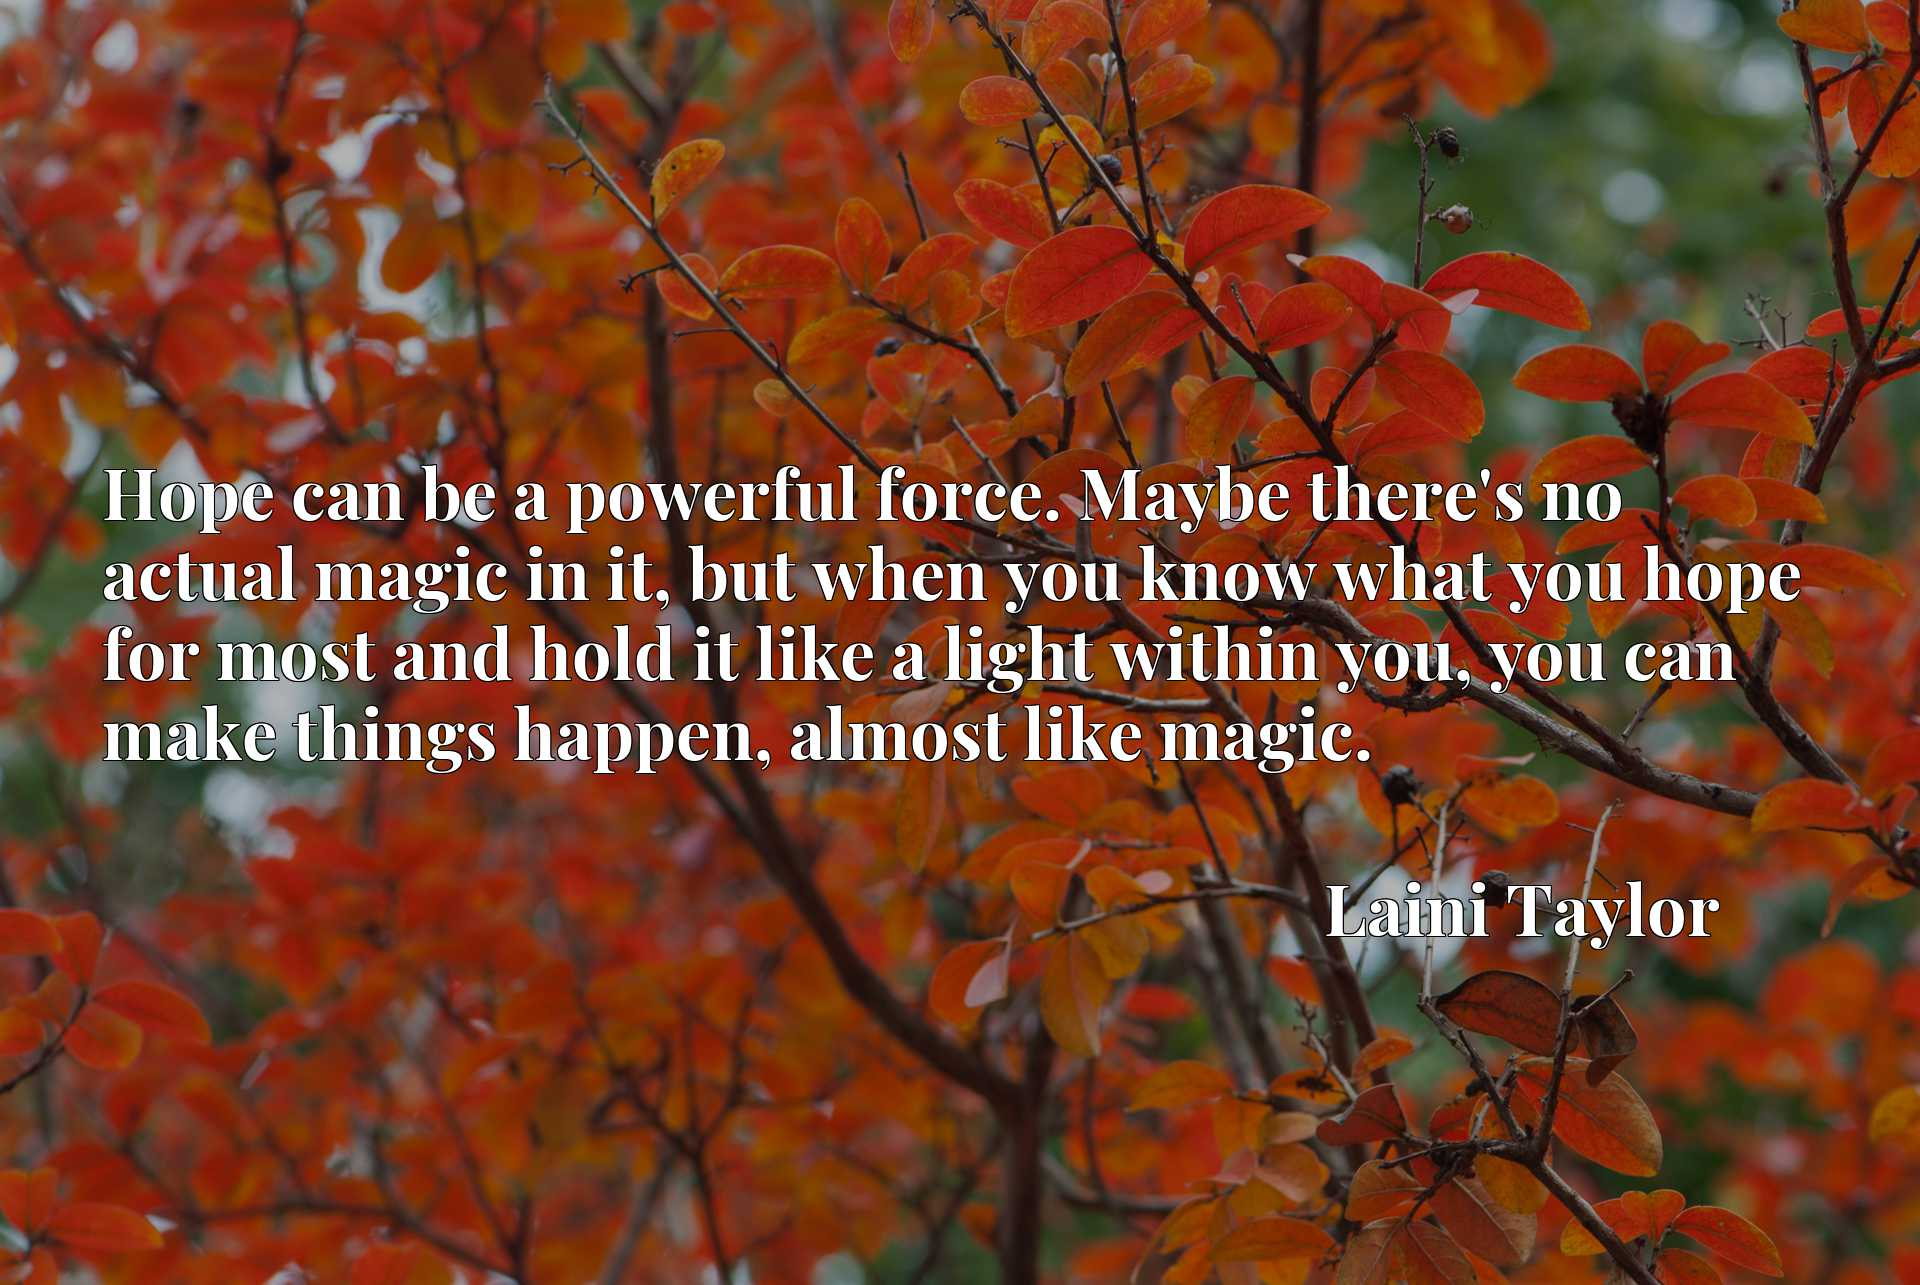 Hope can be a powerful force. Maybe there's no actual magic in it, but when you know what you hope for most and hold it like a light within you, you can make things happen, almost like magic.